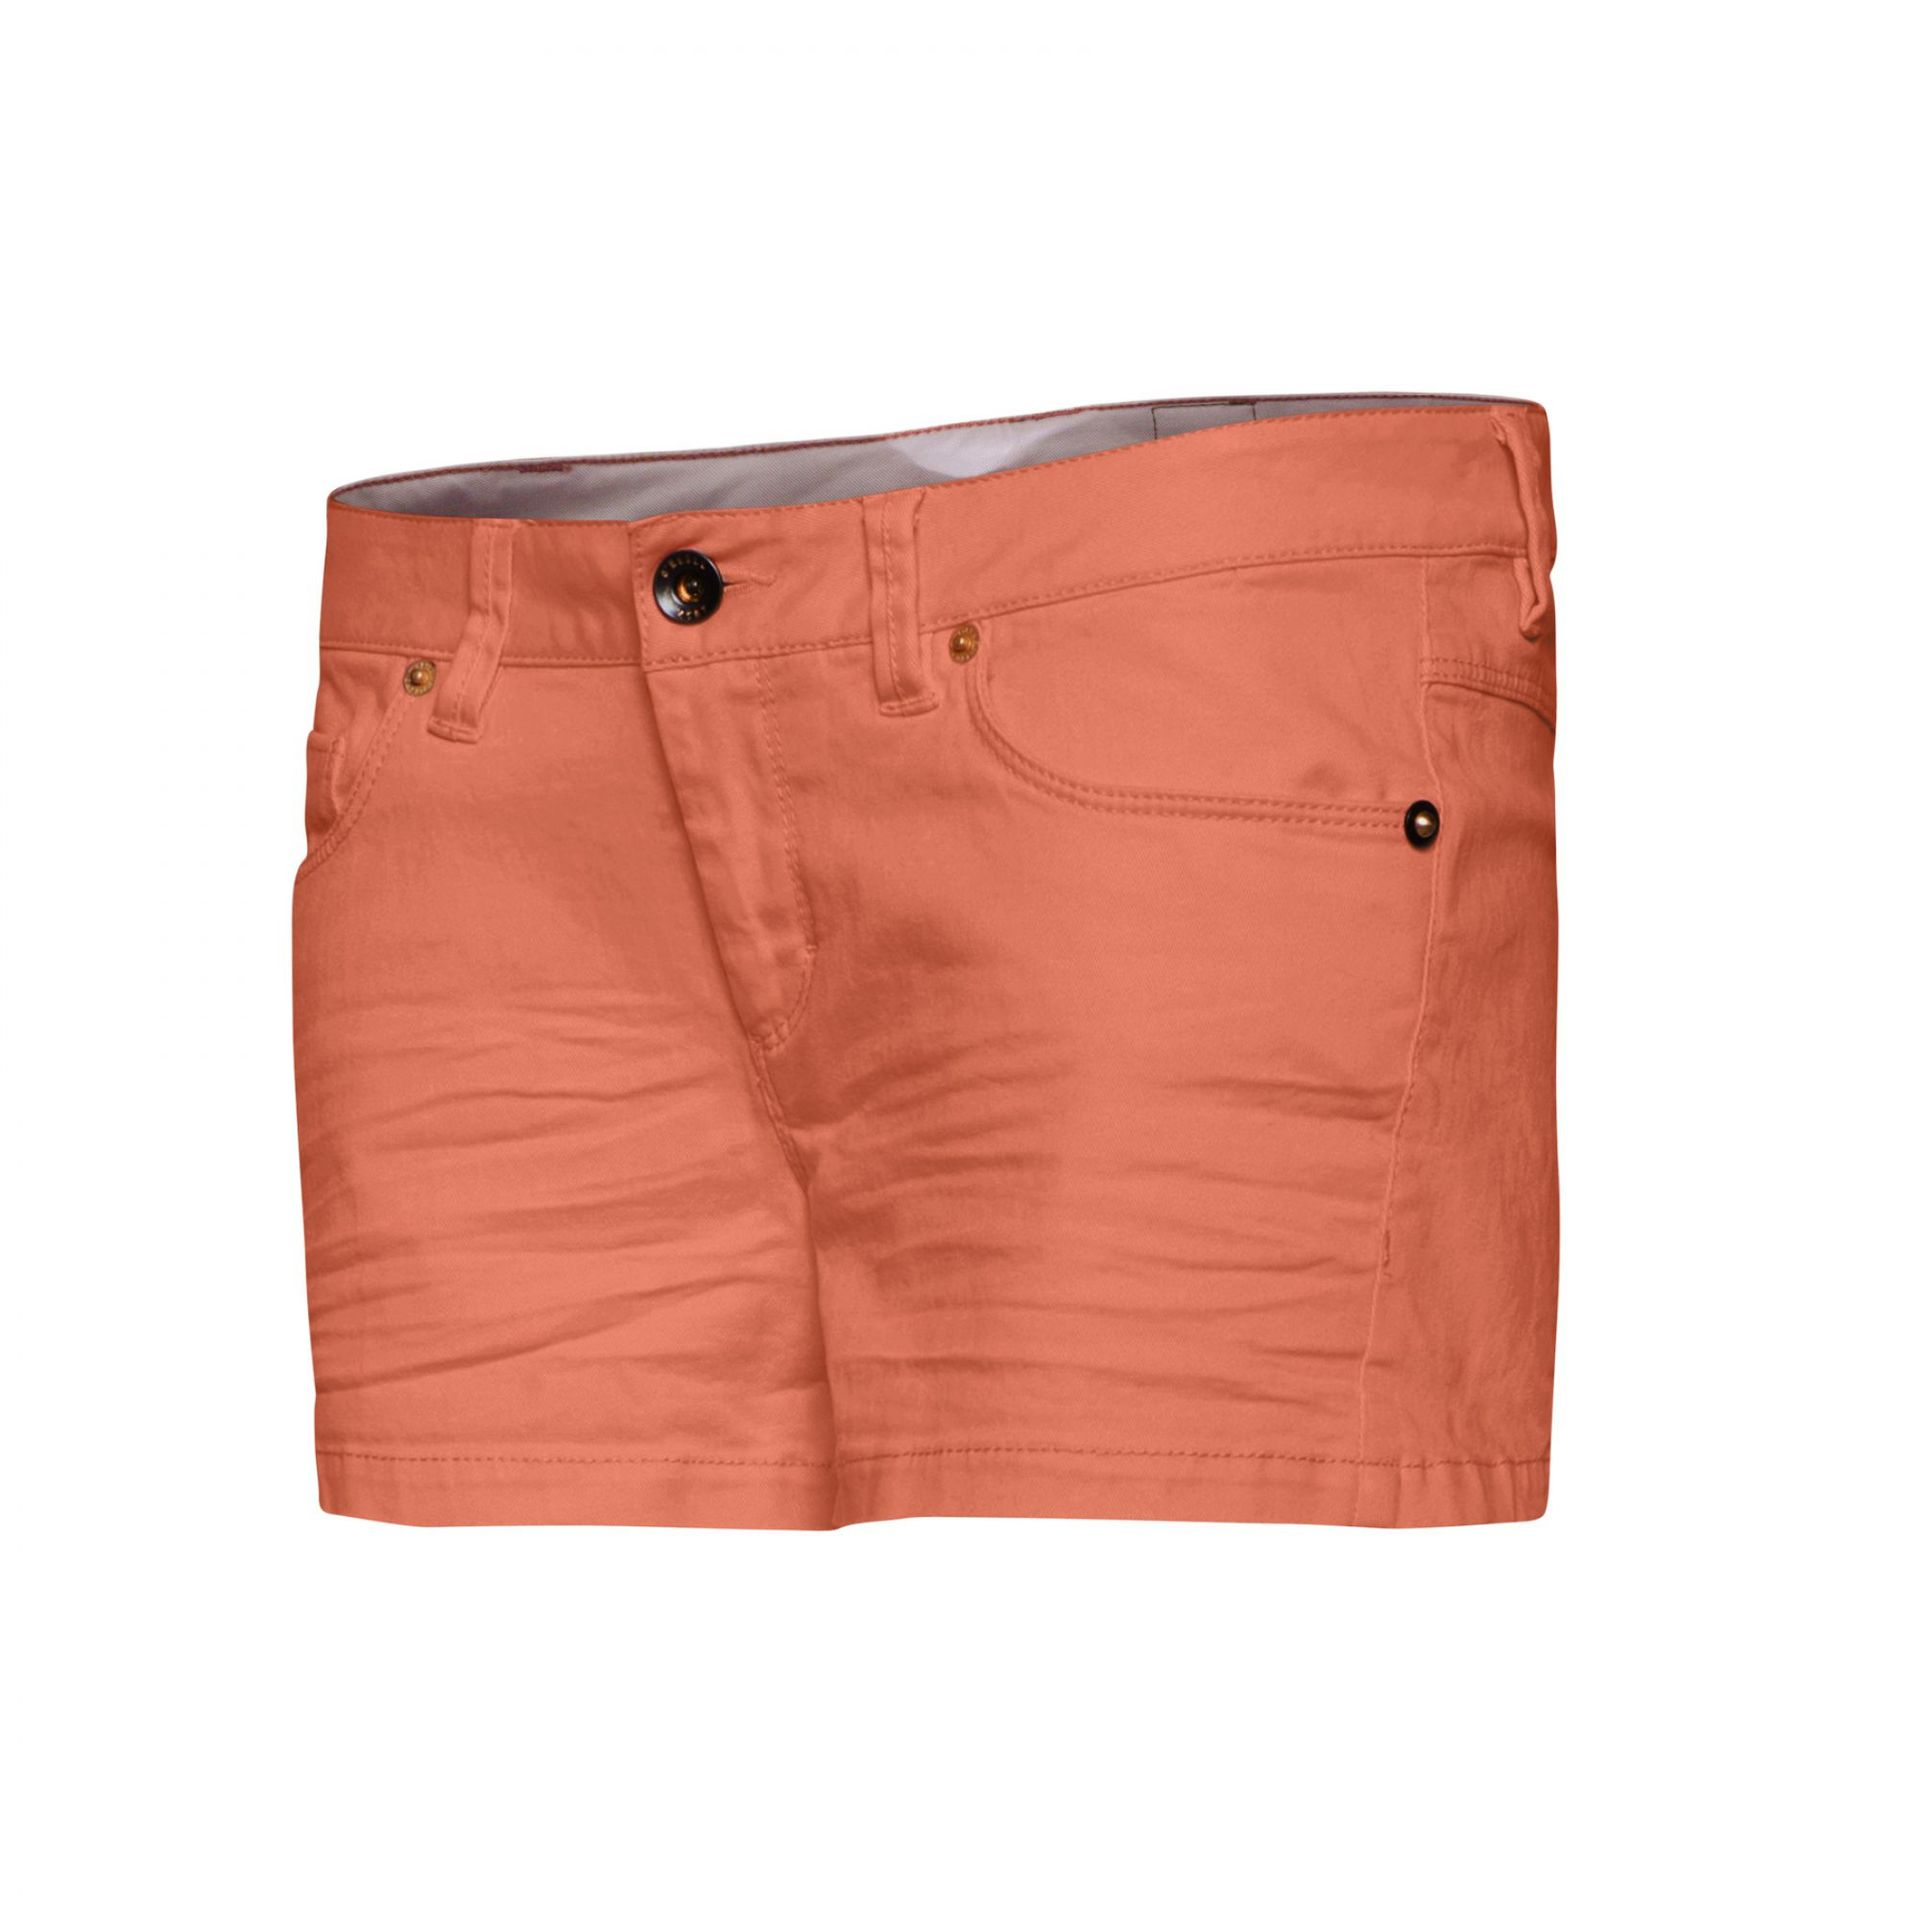 SZORTY ONEILL ISLAND WALKSHORTS SOLID DUNE ORANGE